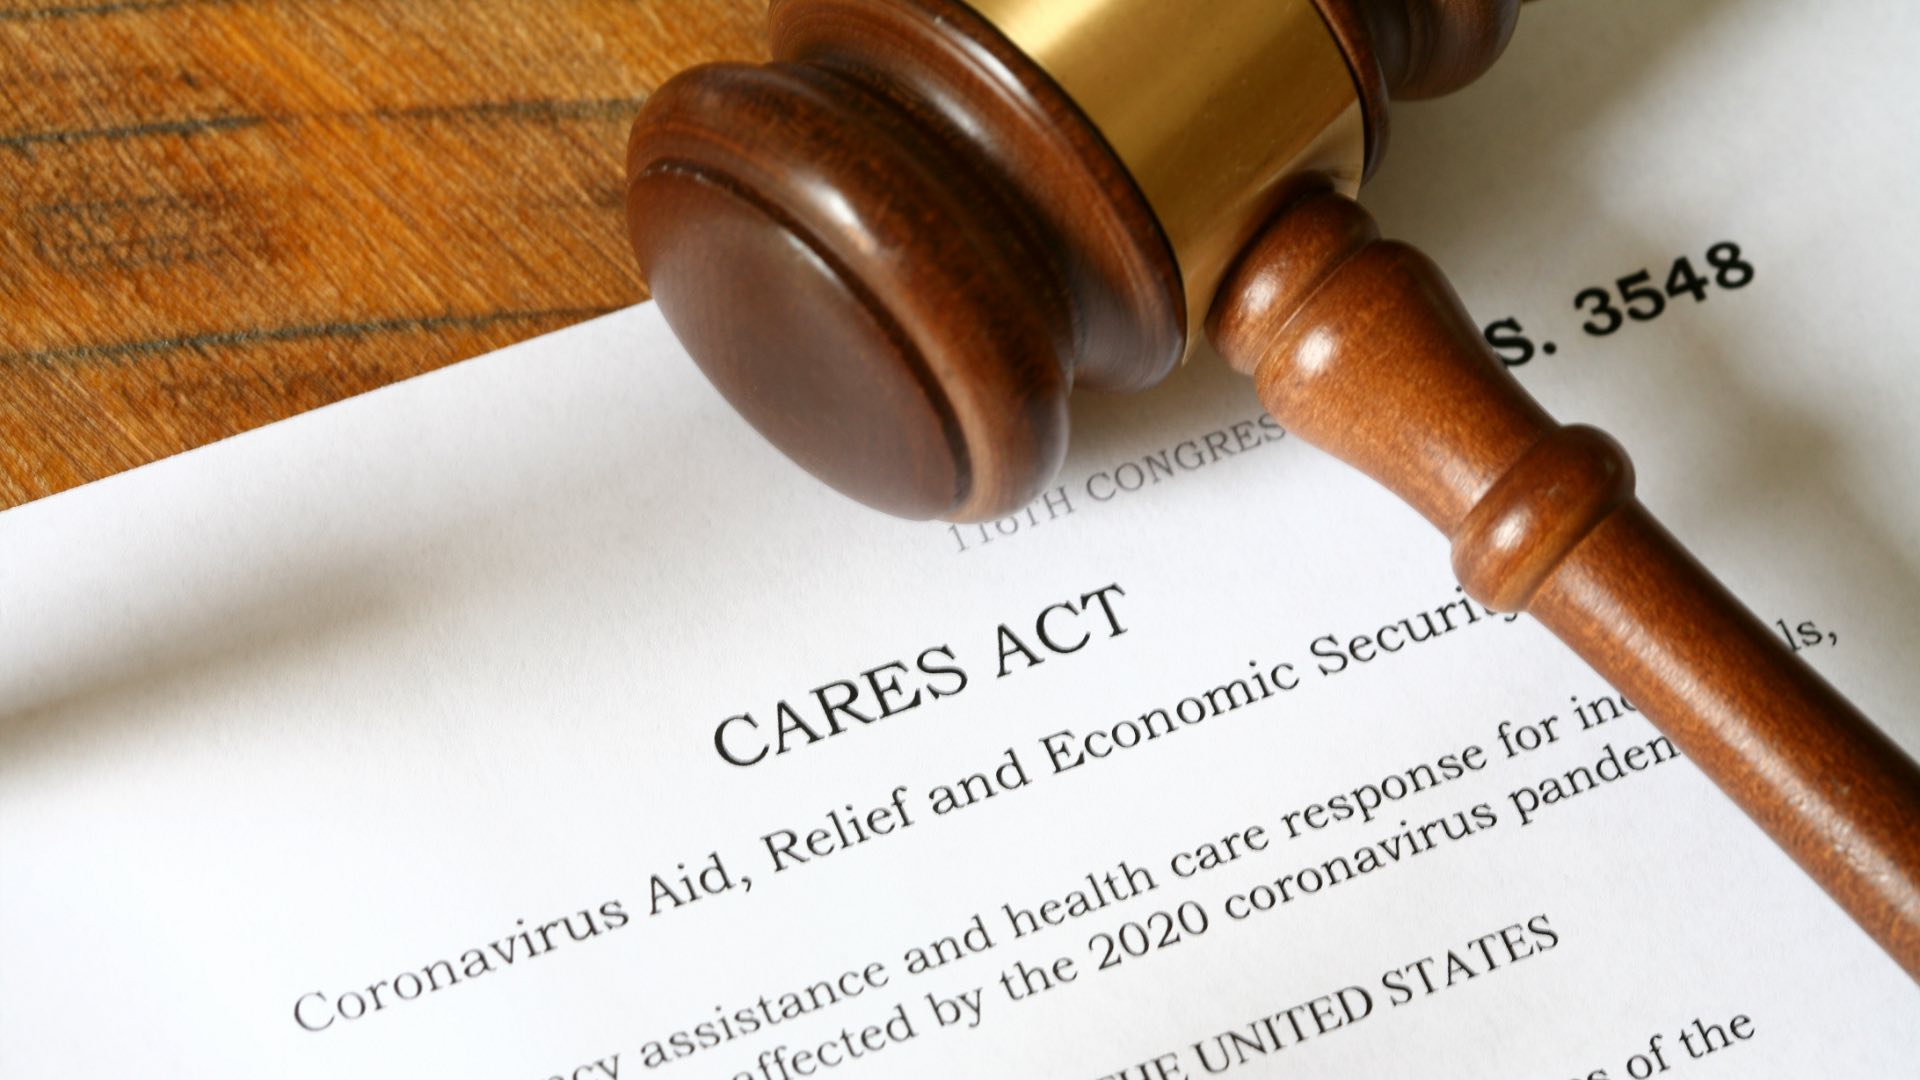 Important Reminder About Deadline for CARES Act Assistance